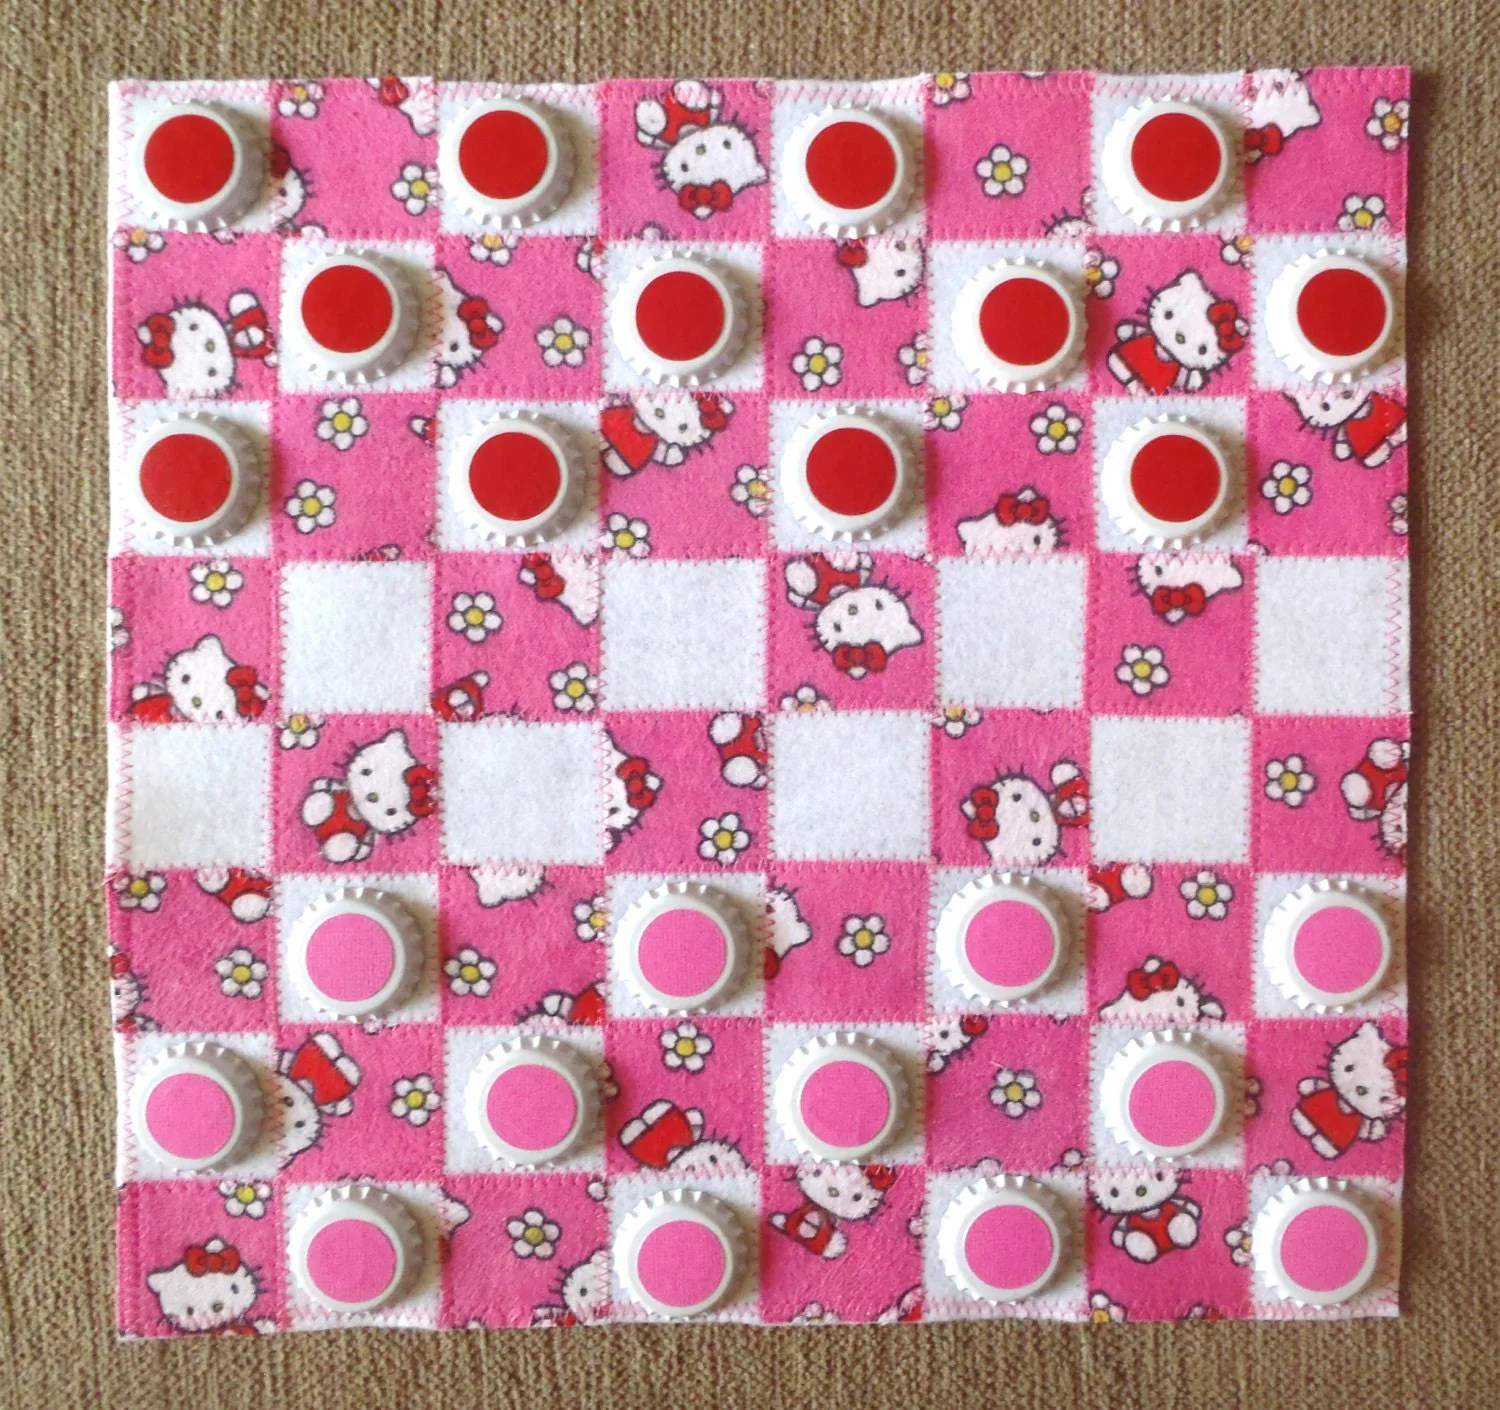 Handmade Hello Kitty Checkerboard With Checkers In A Matching